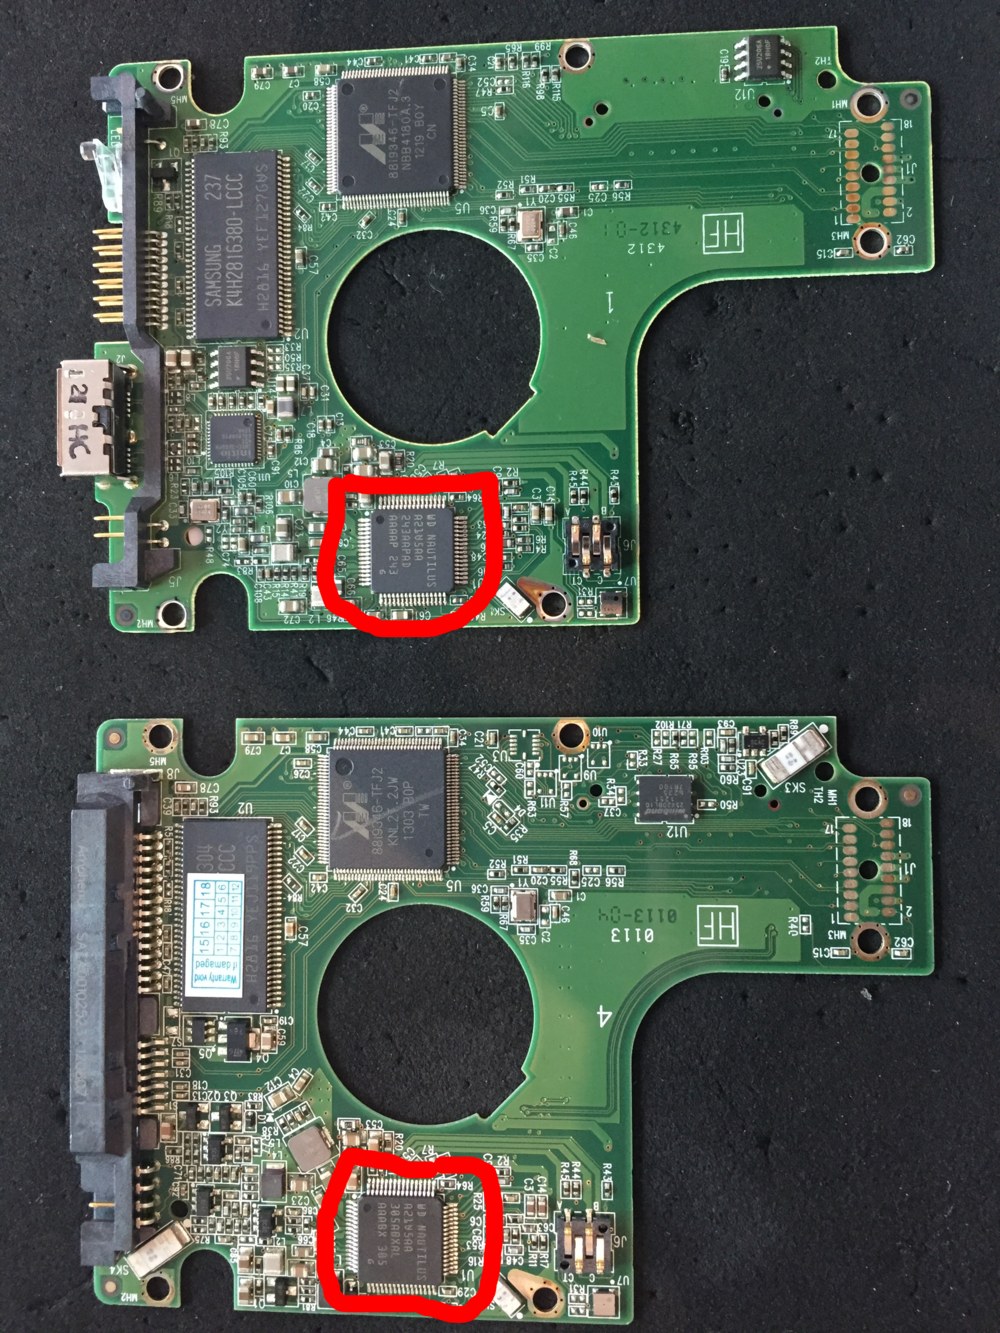 To do real professional data recovery on a WD Passport you need to convert to SATA, to do this we need to swap the rom information from the USB3 PCB to the SATA equivalent. This is a Nautilus Chip with a 256k U12 Rom